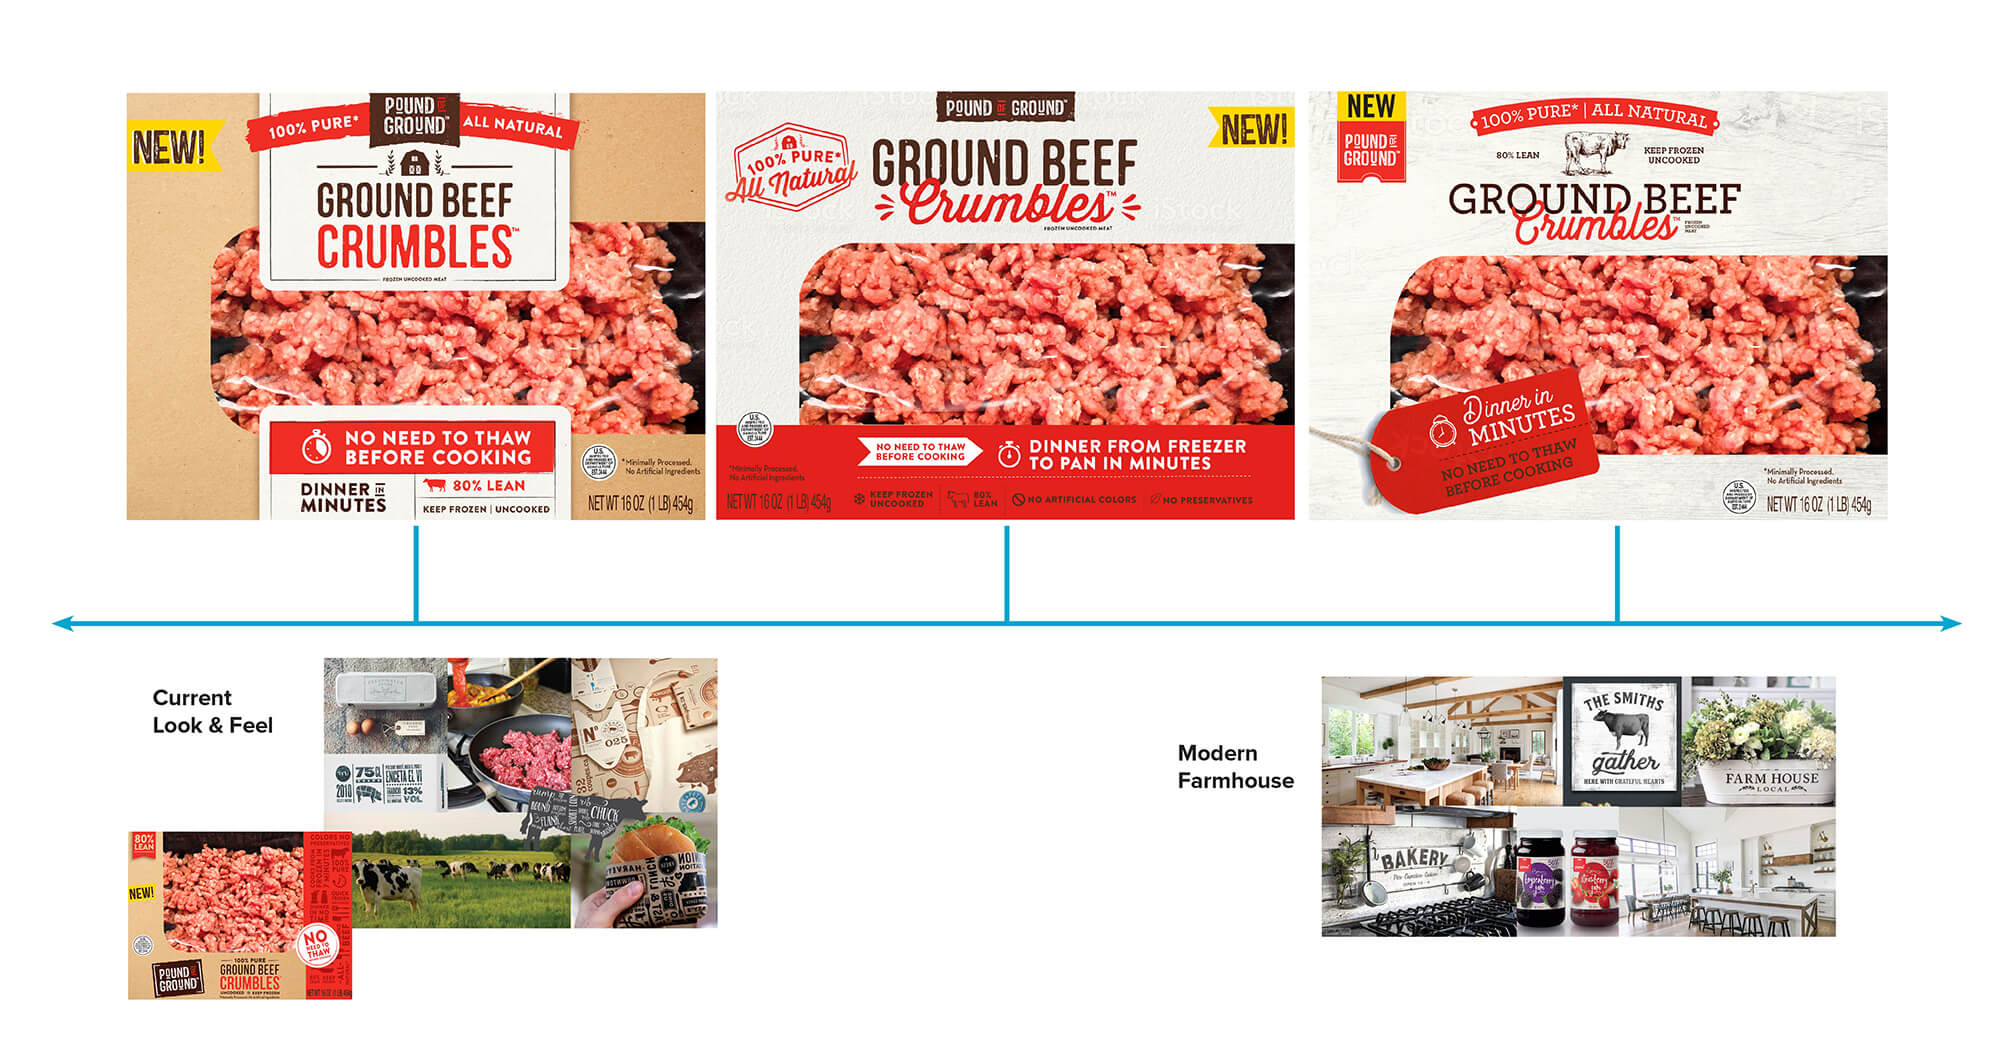 After a consumer trial in-store the food packaging was updated to fit a more modern farmhouse style.